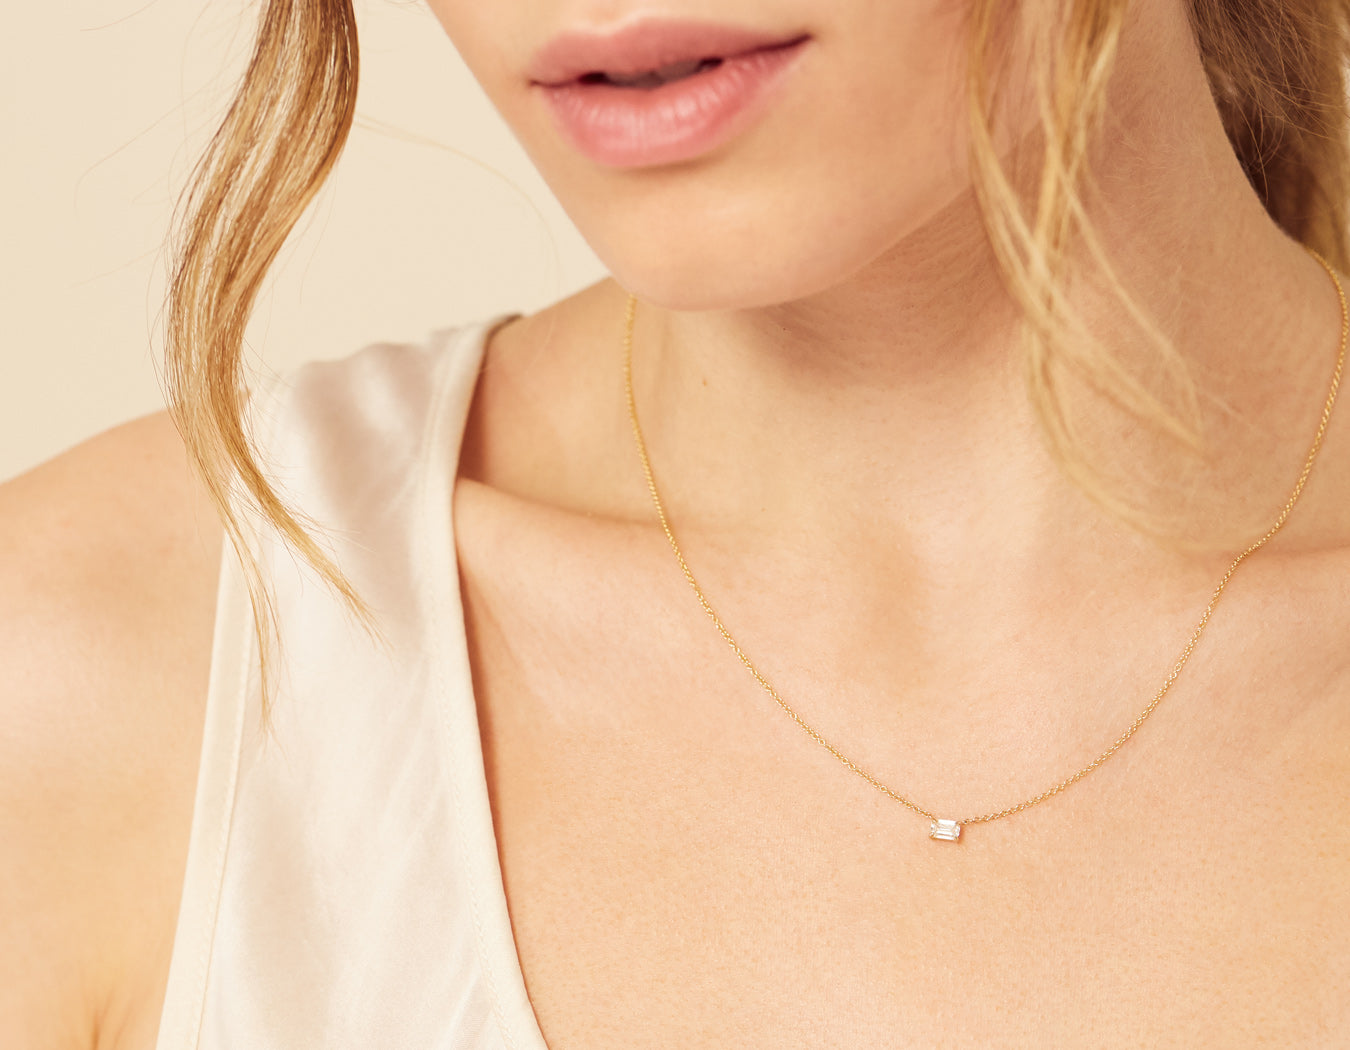 Woman modelling simple classic .25 ct Emerald Diamond necklace in 18K Solid Yellow Gold Vrai & Oro Modern Minimalist jewelry